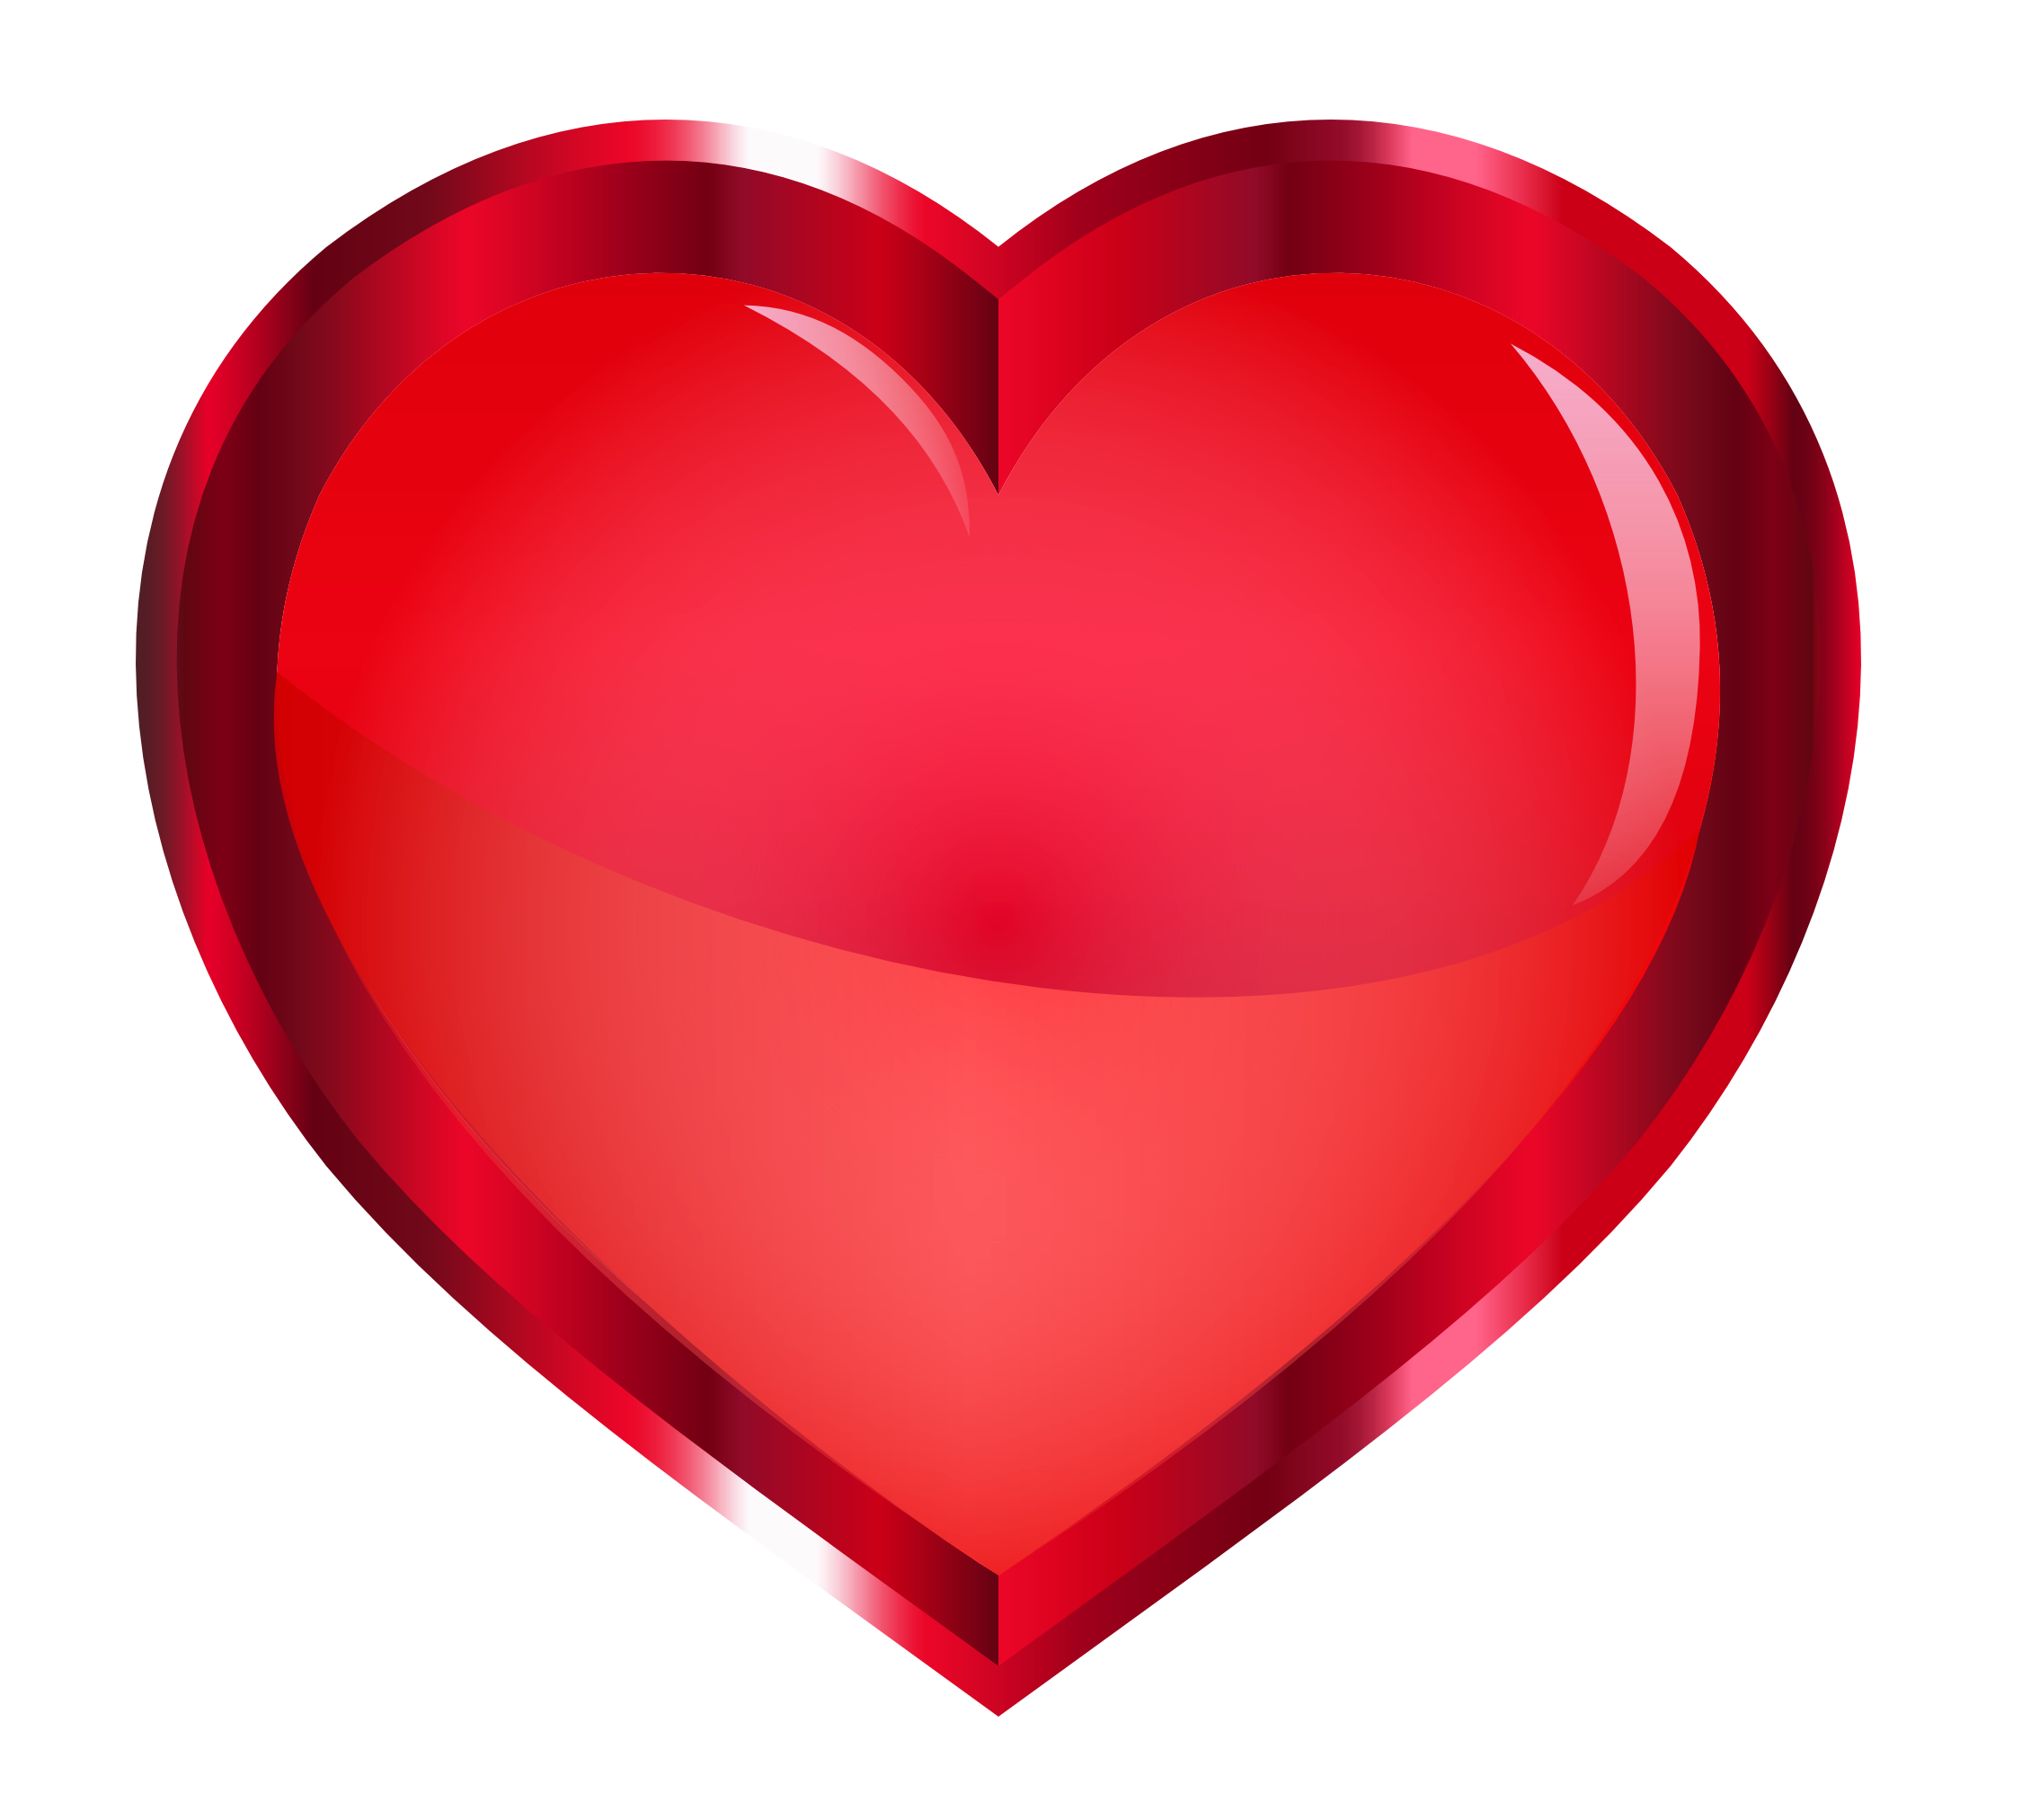 Red png image purepng. Heat clipart kind heart